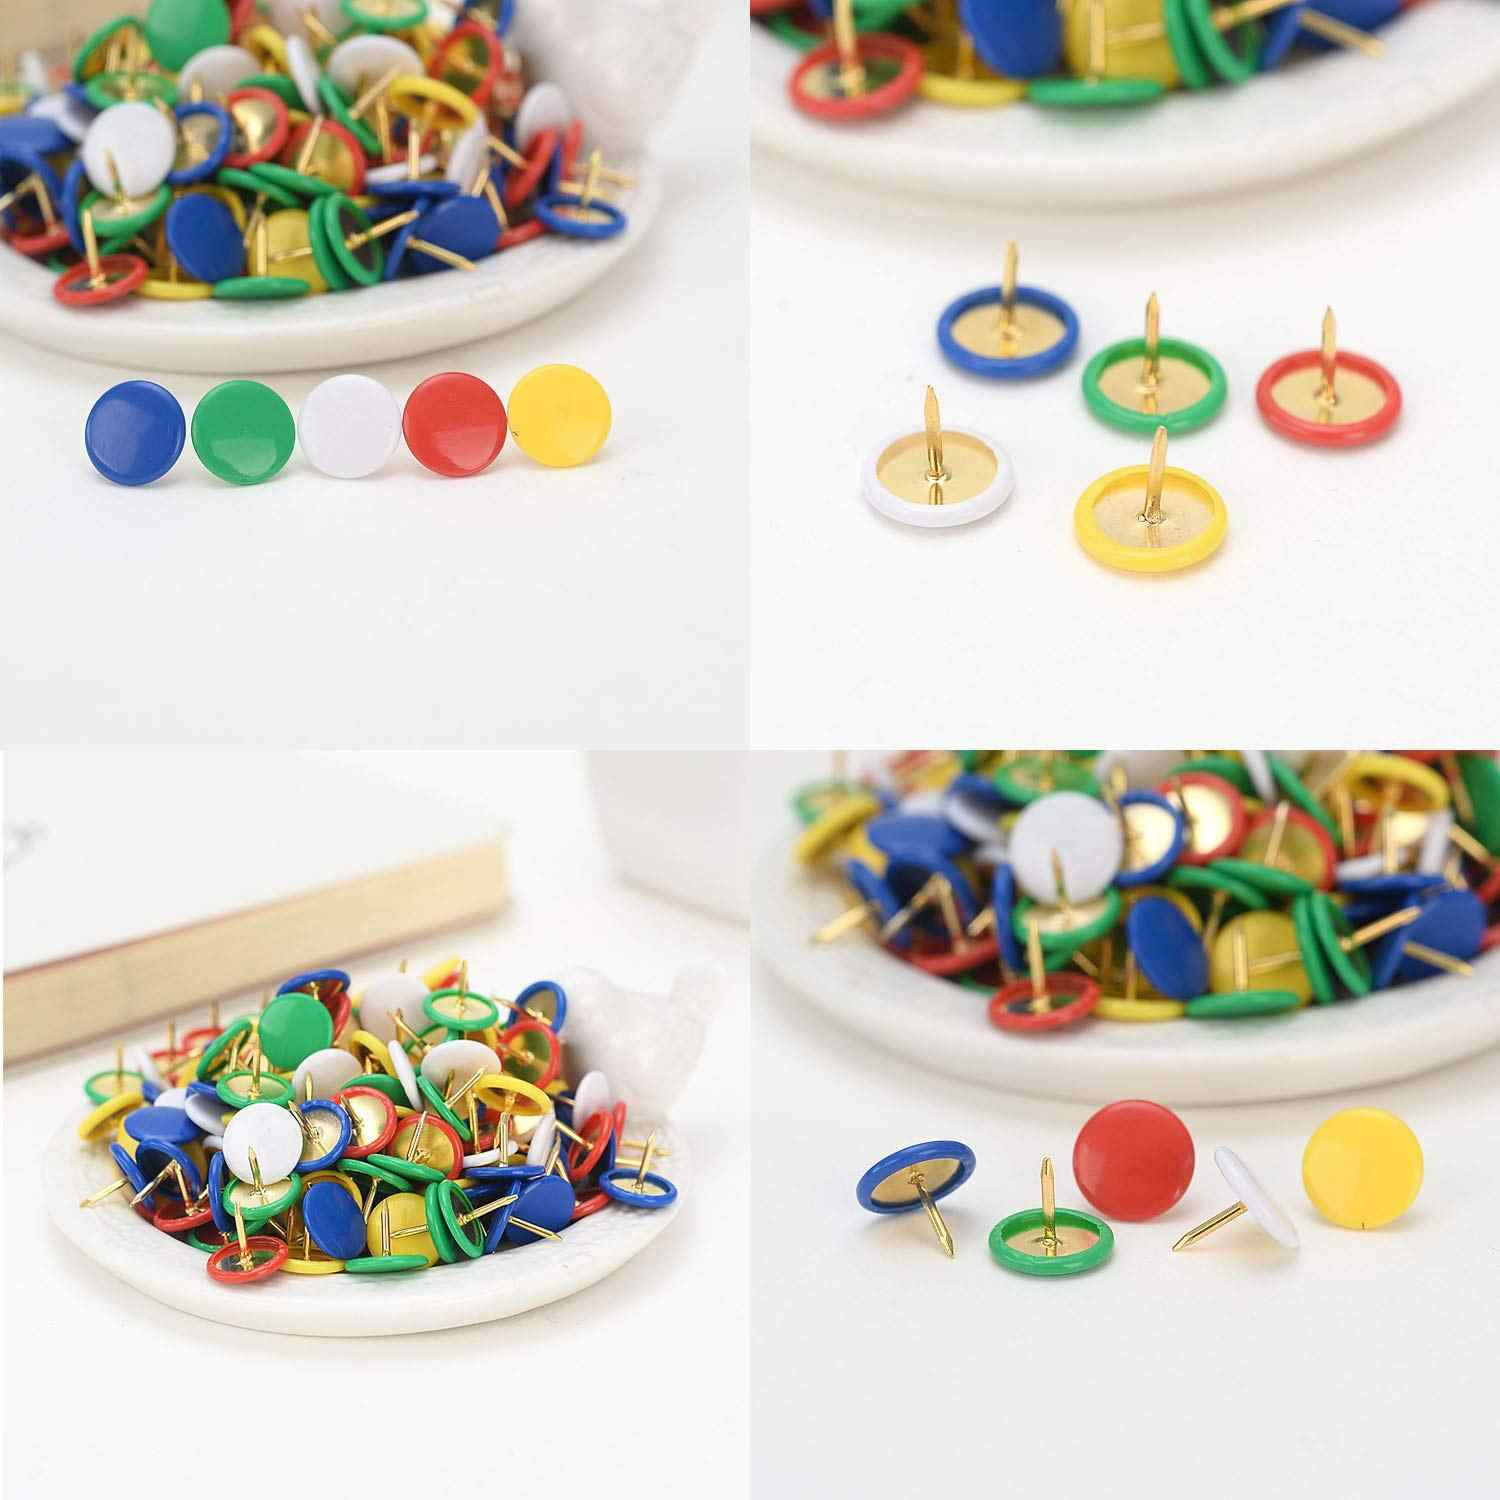 decorate office cubicles office holiday decor.htm map thumb tacks office push pins round plastic head drawing pins  map thumb tacks office push pins round